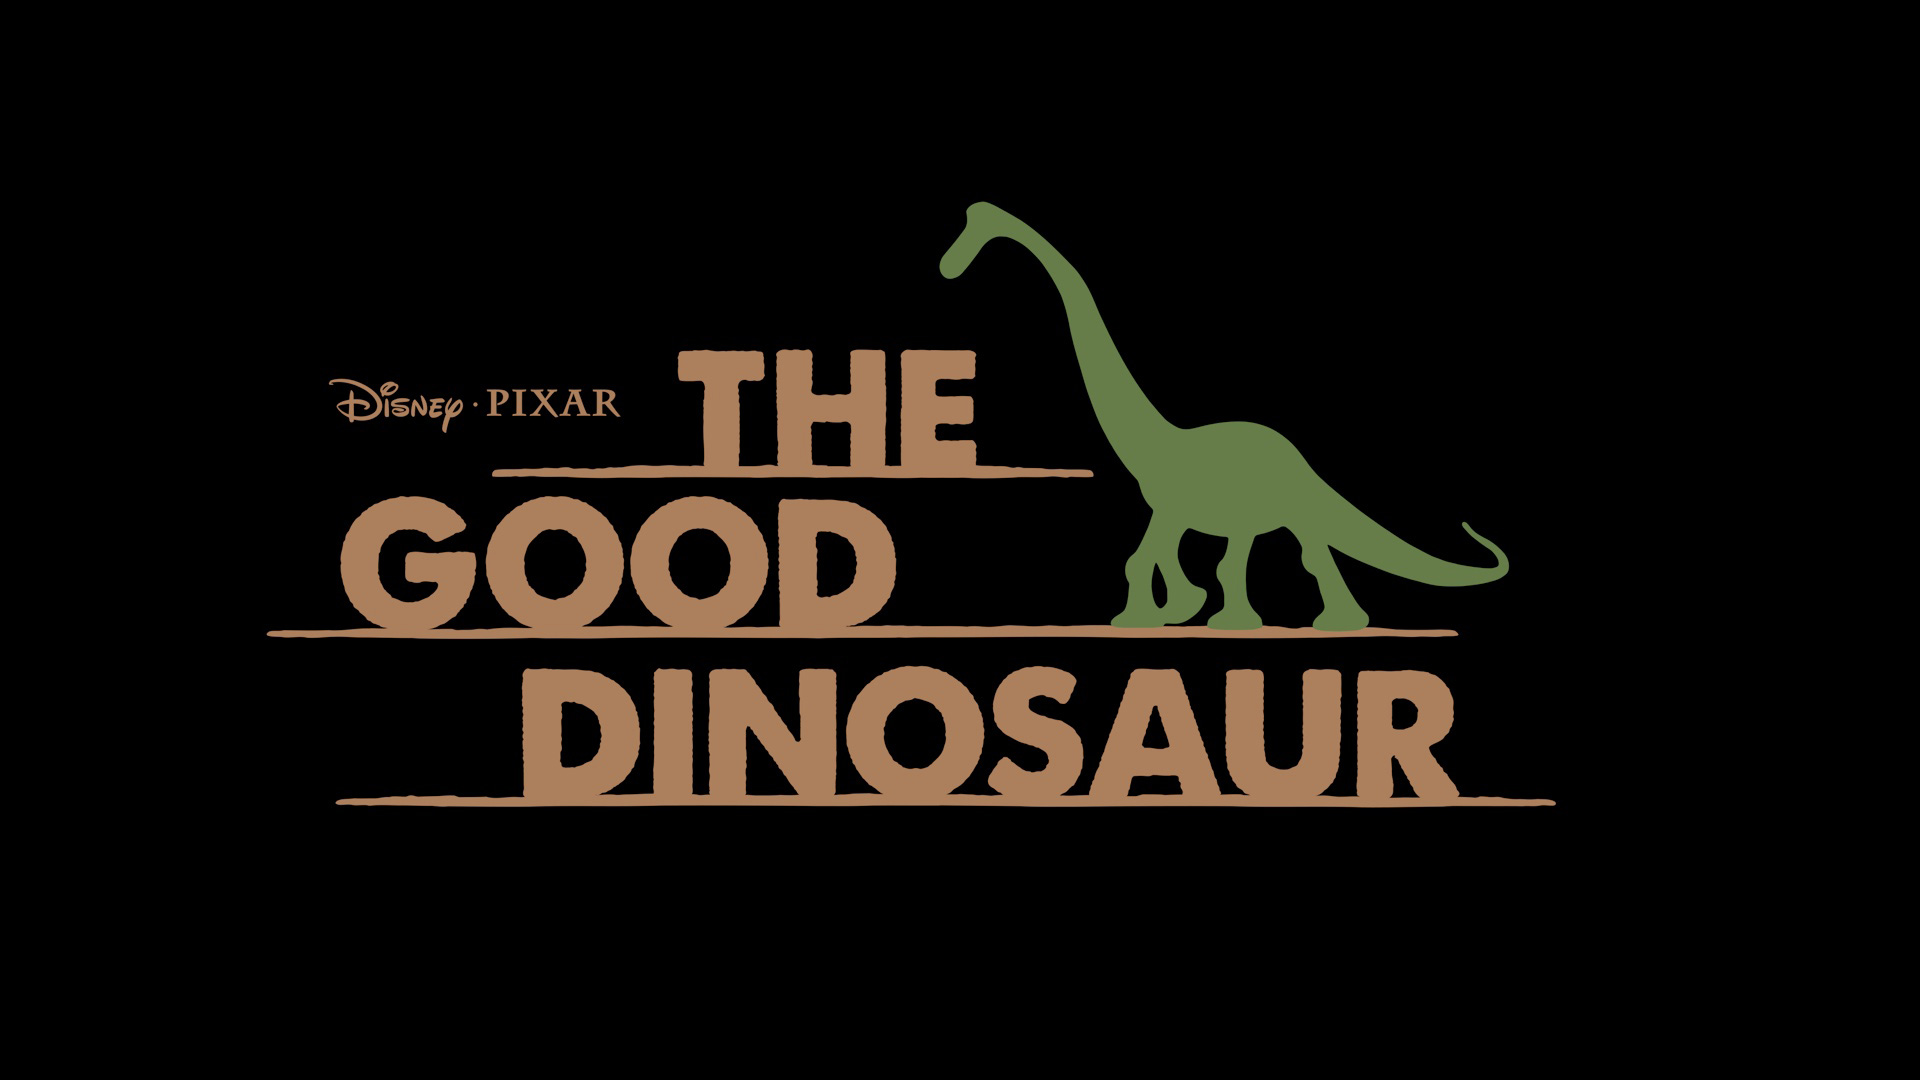 the_good_dinosaur_logo_pixar